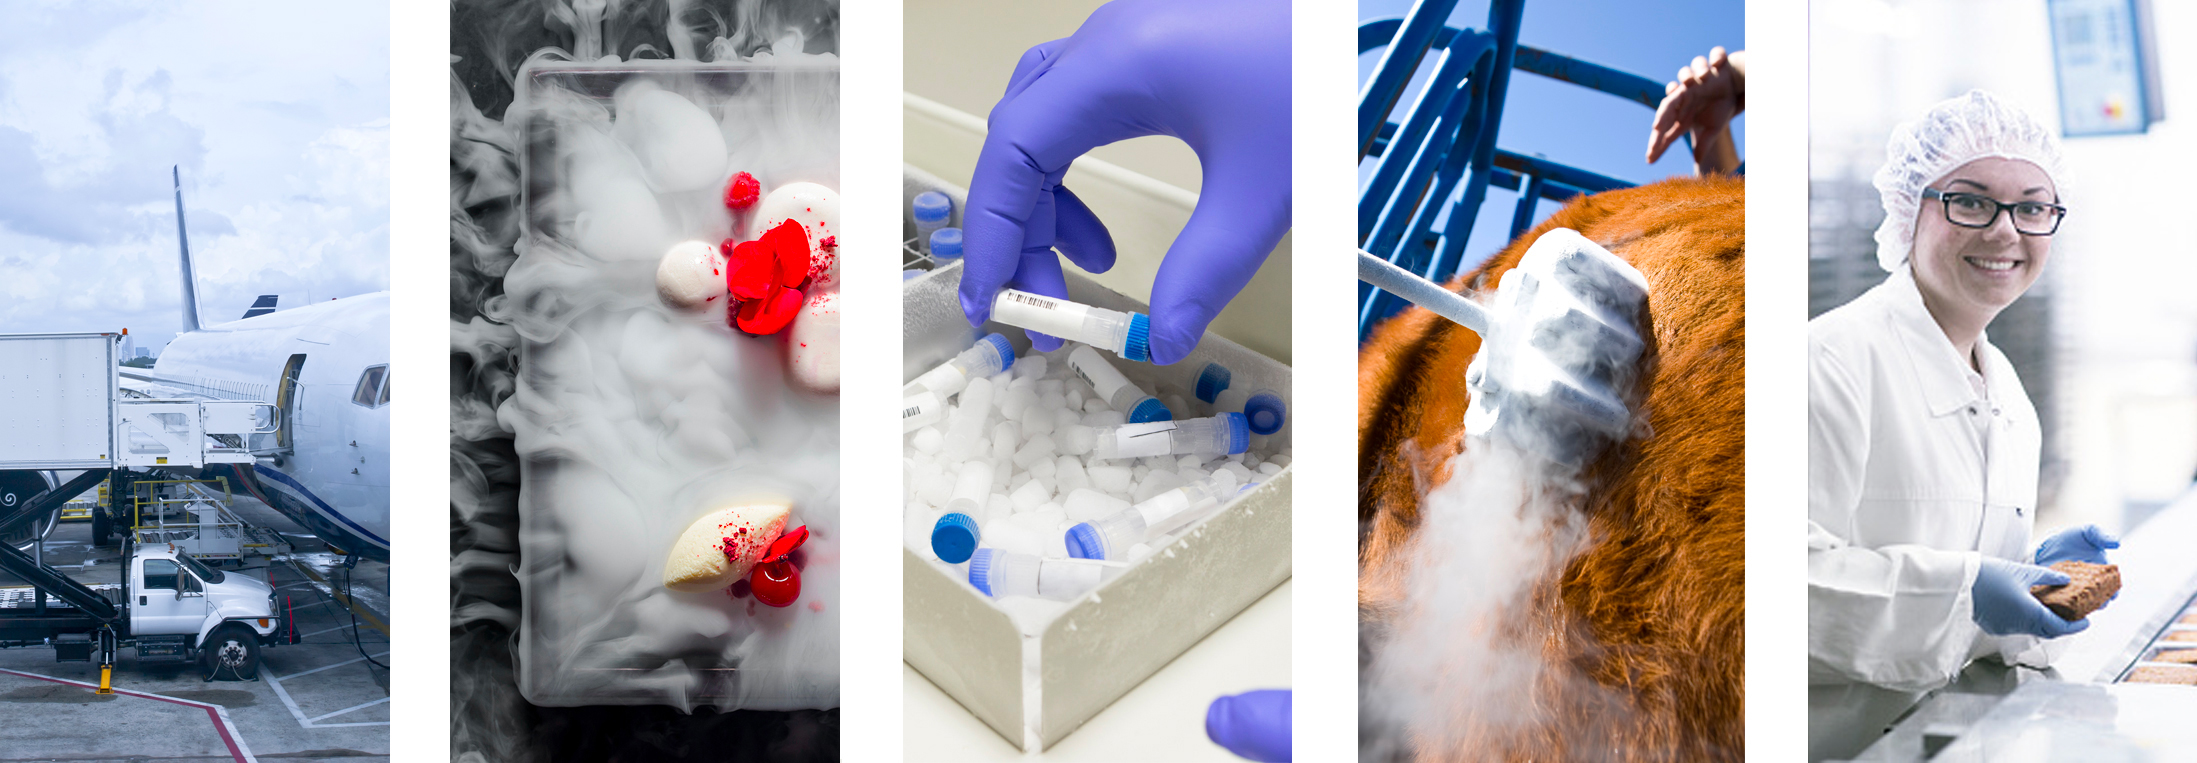 Images of Dry Ice Applications